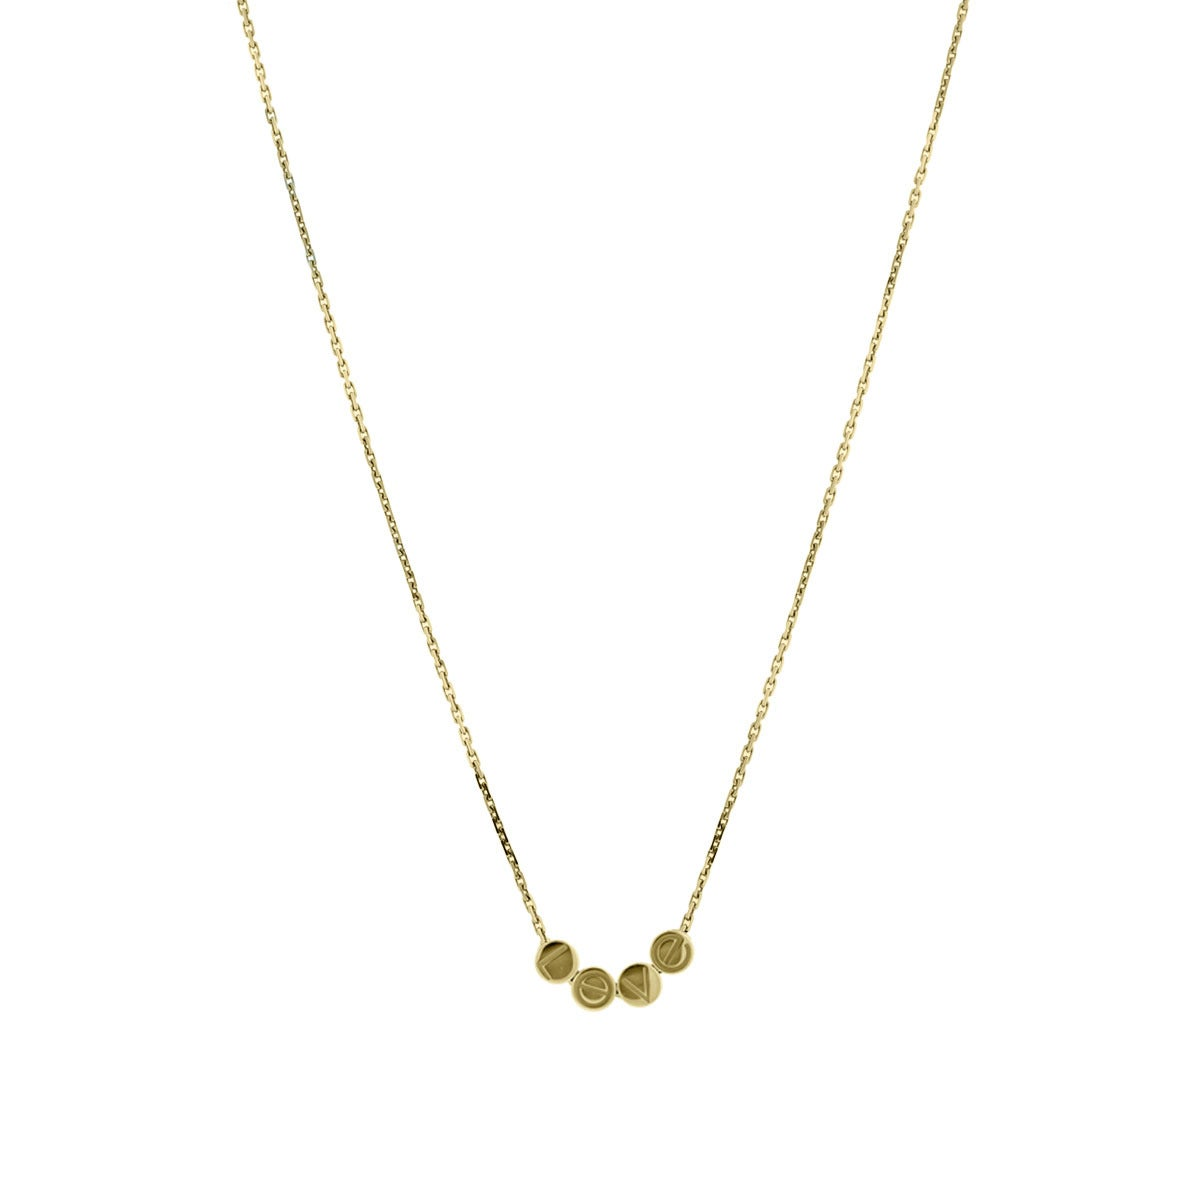 Cartier Gold LOVE Necklace at 1stdibs